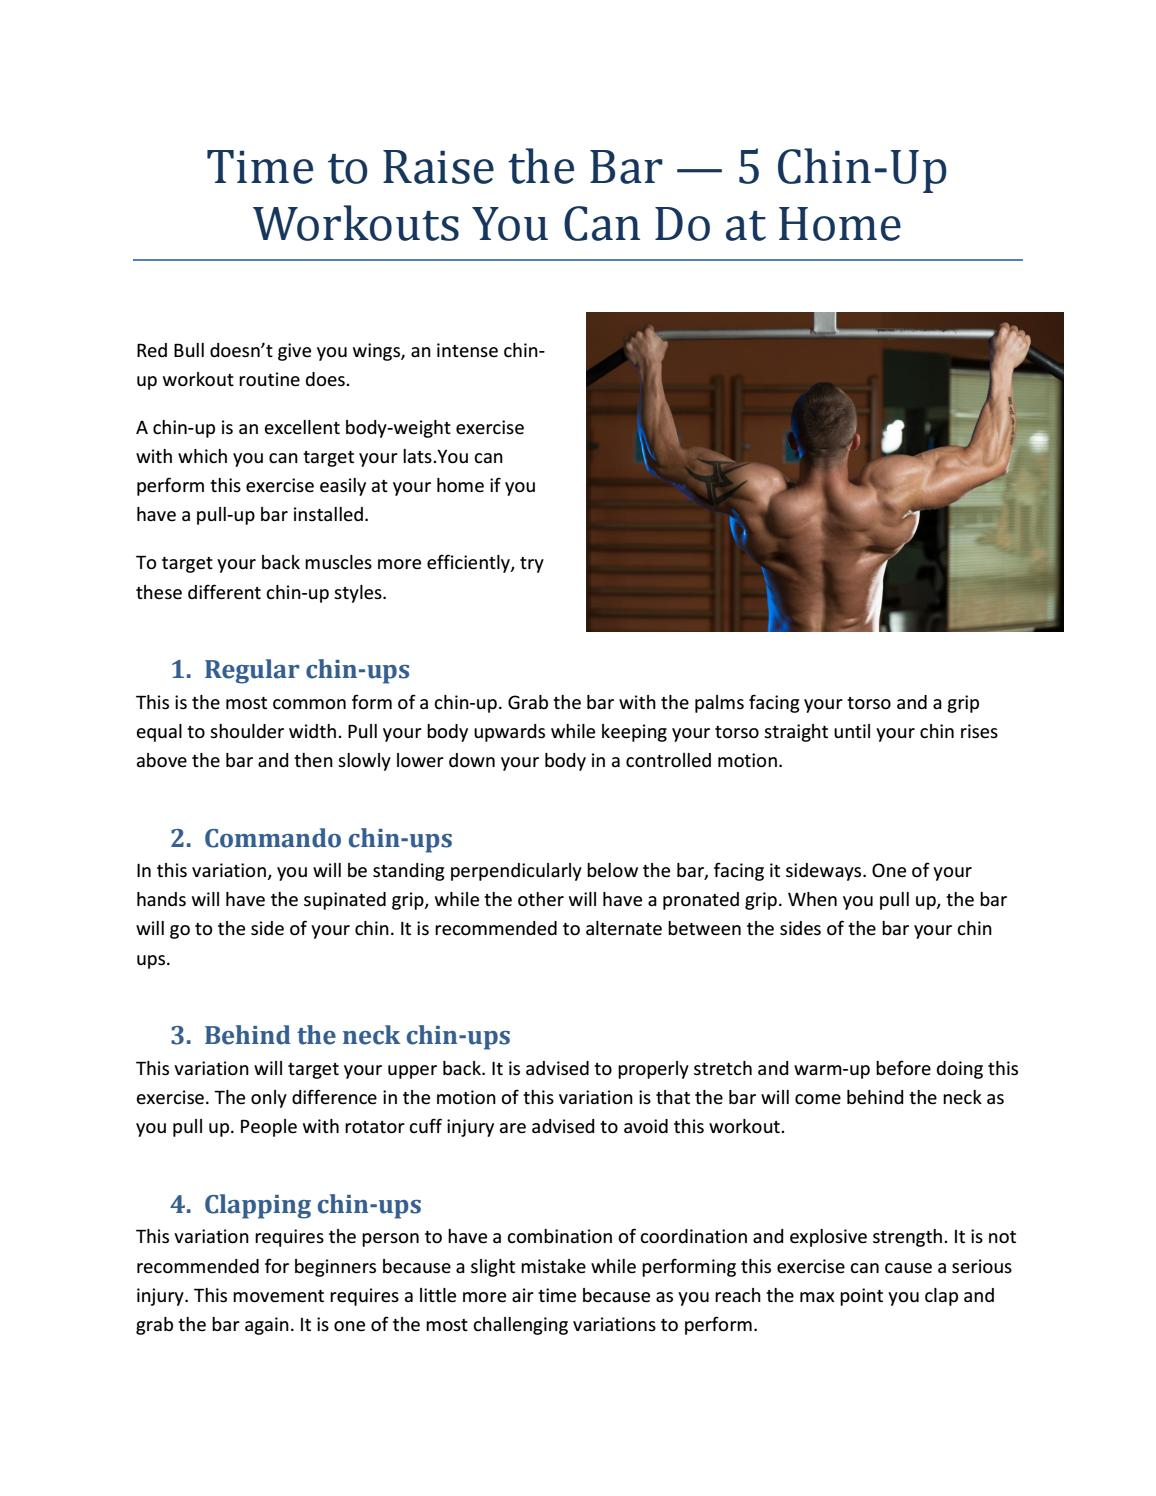 5 Different Chin-Up Styles You Can Do at Home by tydaxfitness1 - issuu